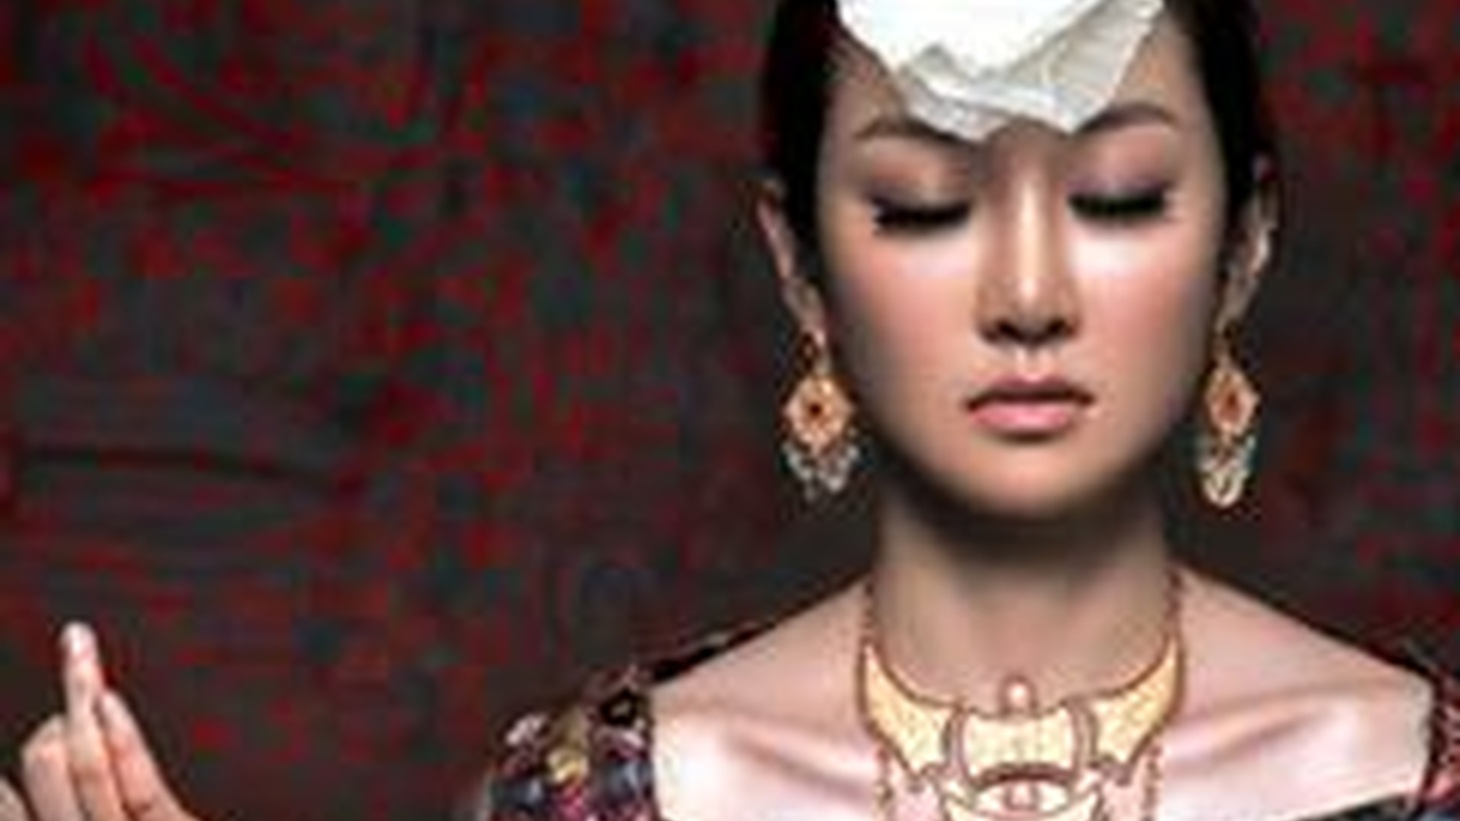 The rising Chinese superstar musician Sa Dingding is Tom's guest from 2-2:30 pm. Sa Dingding embraces a variety of styles, and her CD, Alive, was lavishly produced. She has her eye on the West, and is bound to be a young artist that we will hear more from.